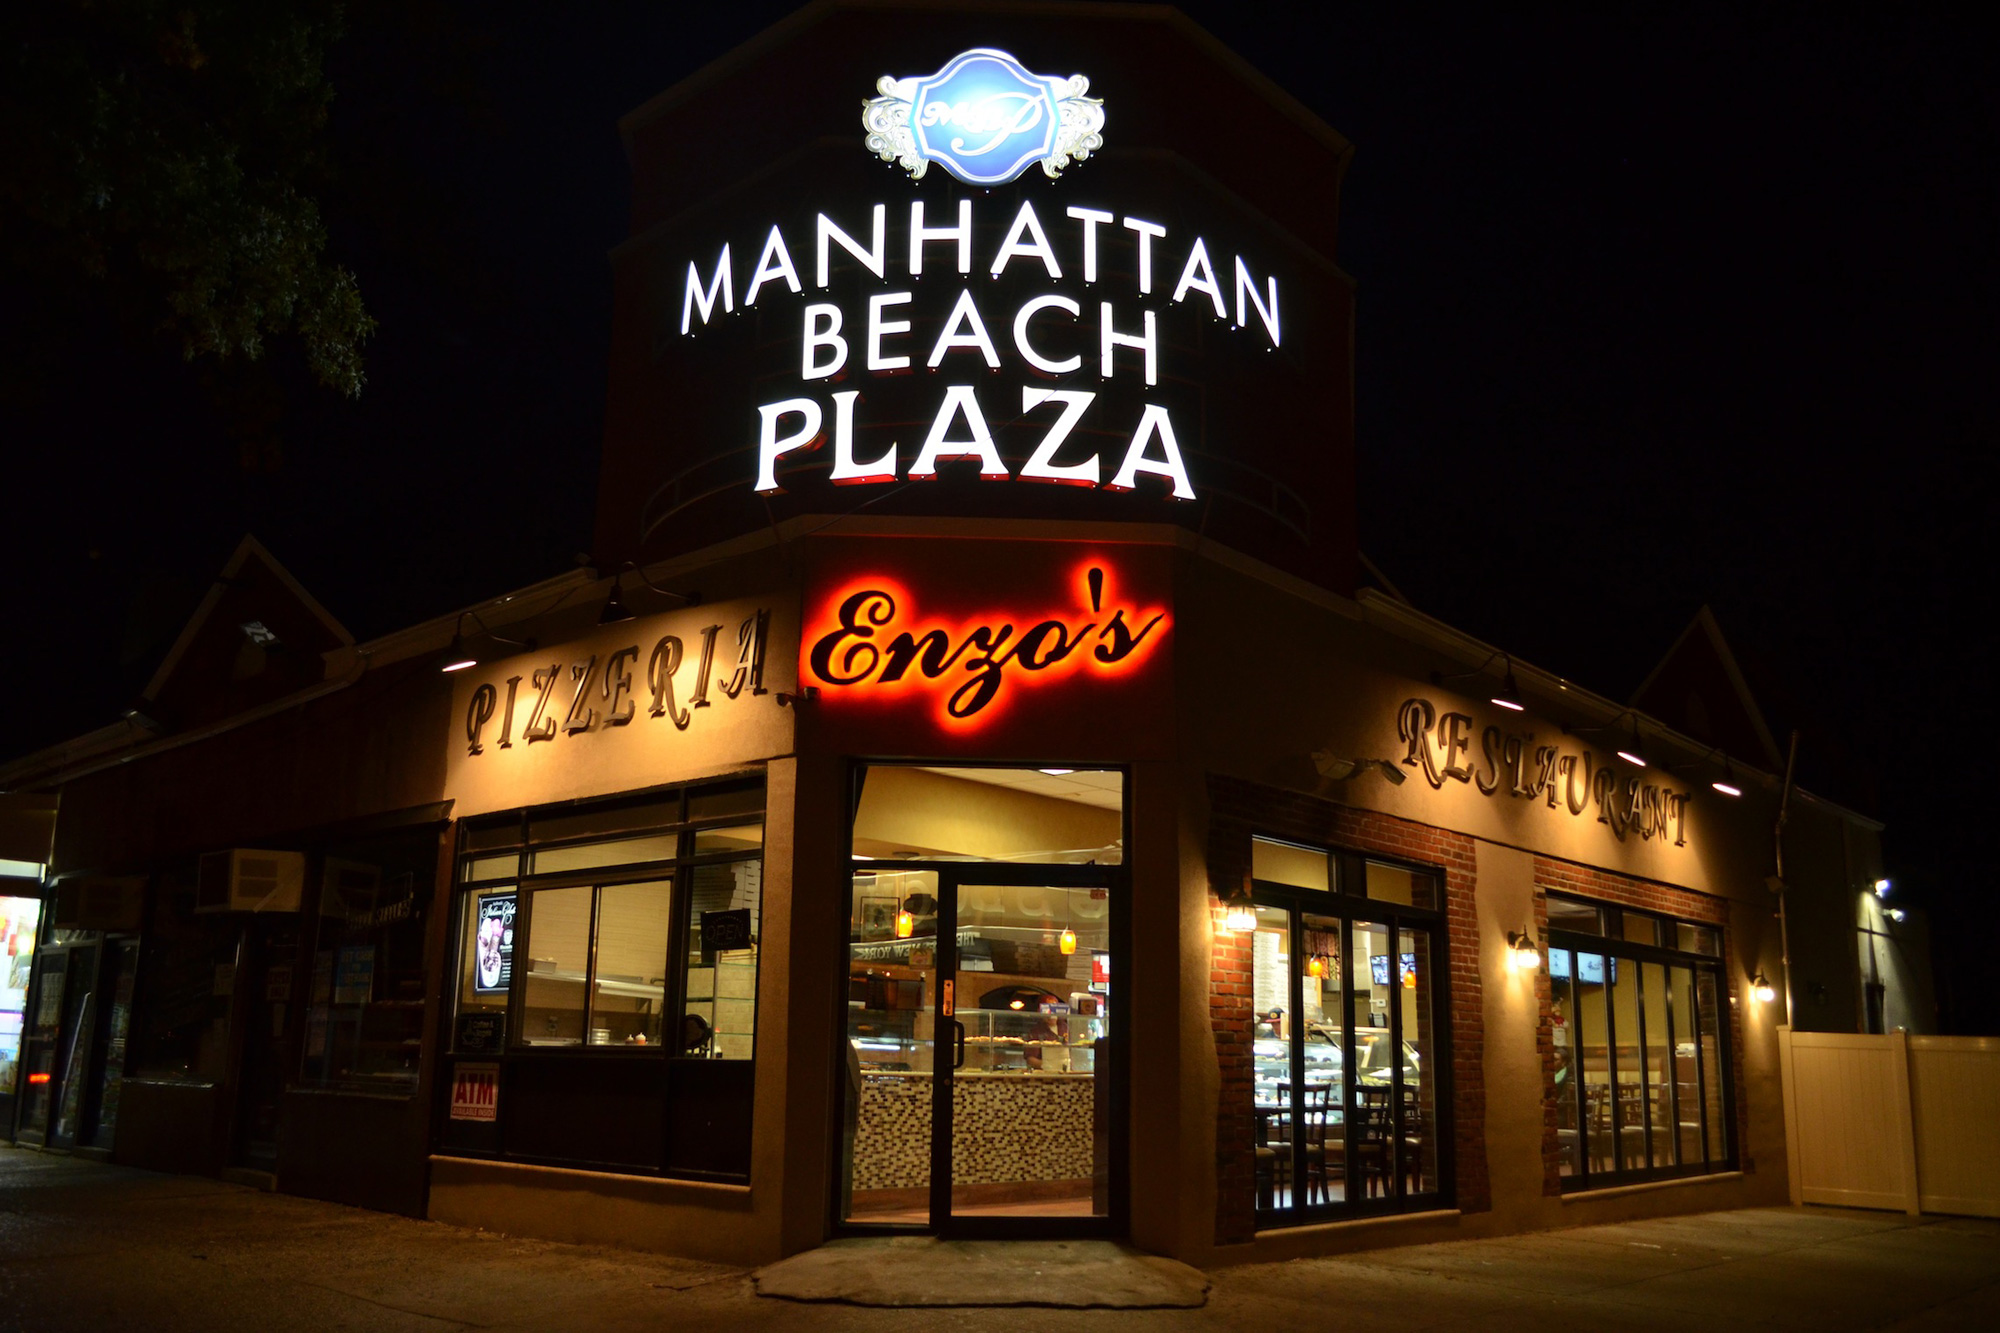 The Manhattan Beach Plaza Brooklyn, Ny